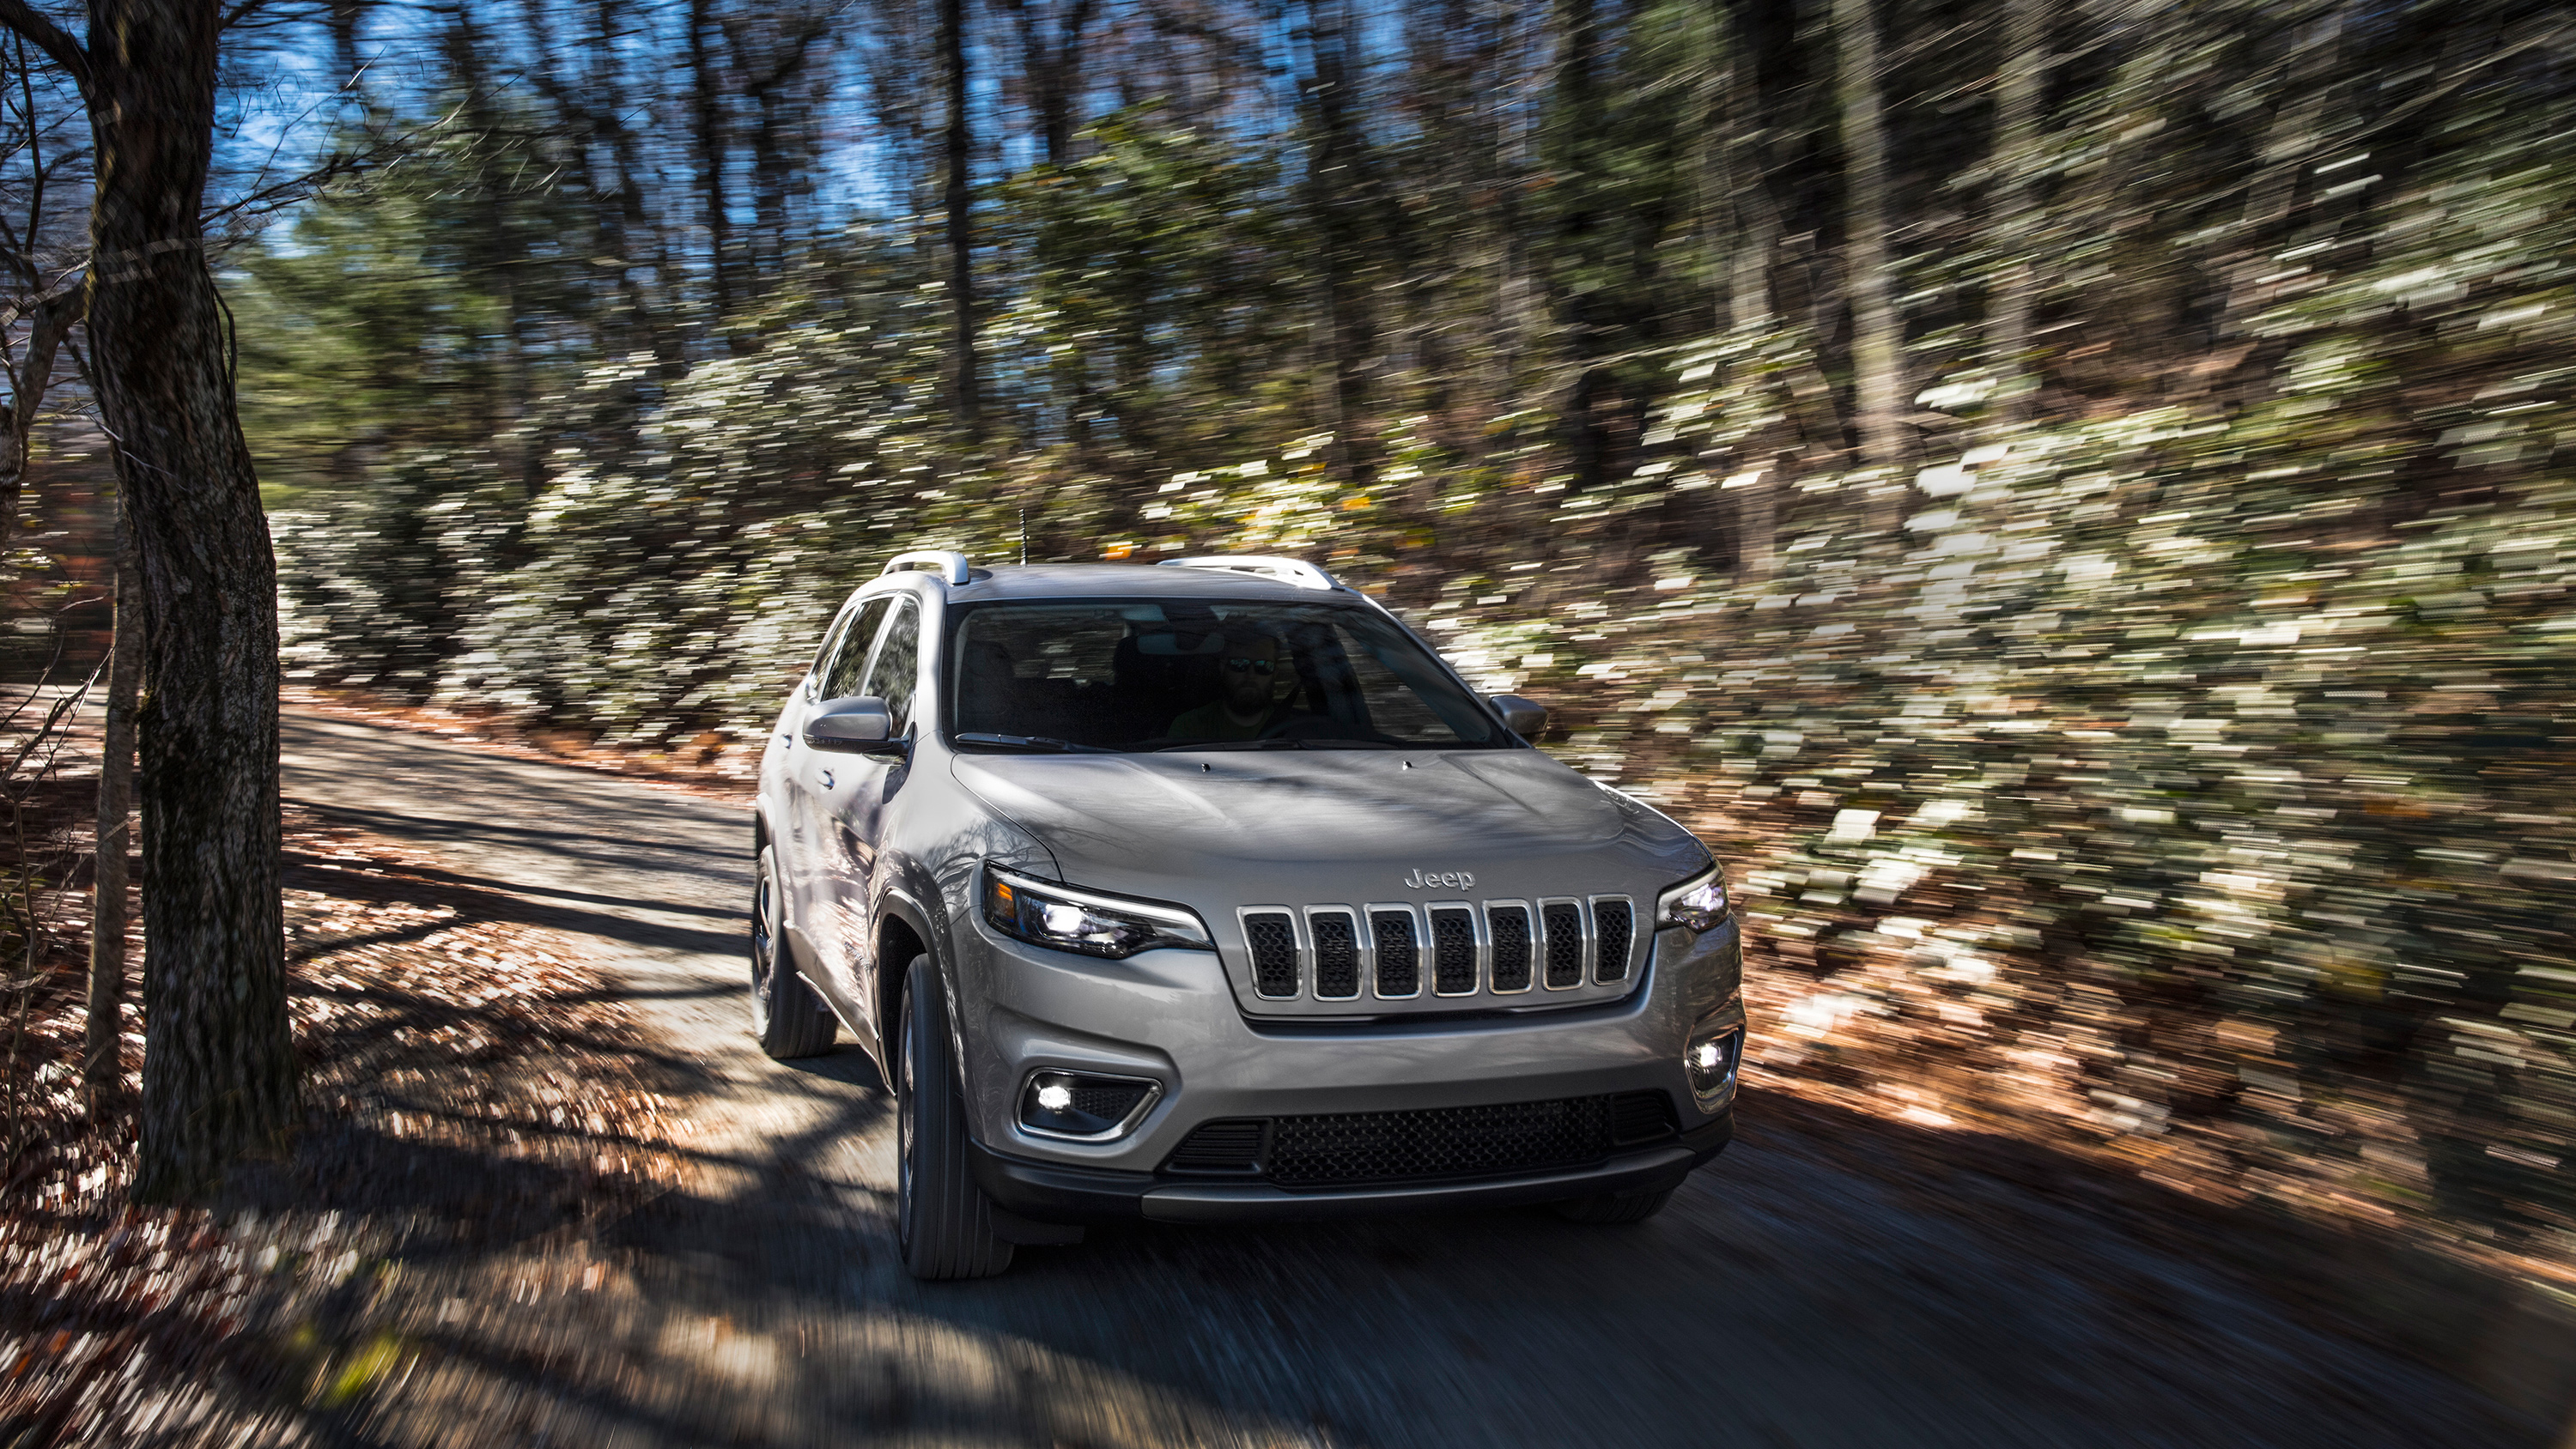 2019 Jeep Cherokee Limited 2 Wallpaper   HD Car Wallpapers ...